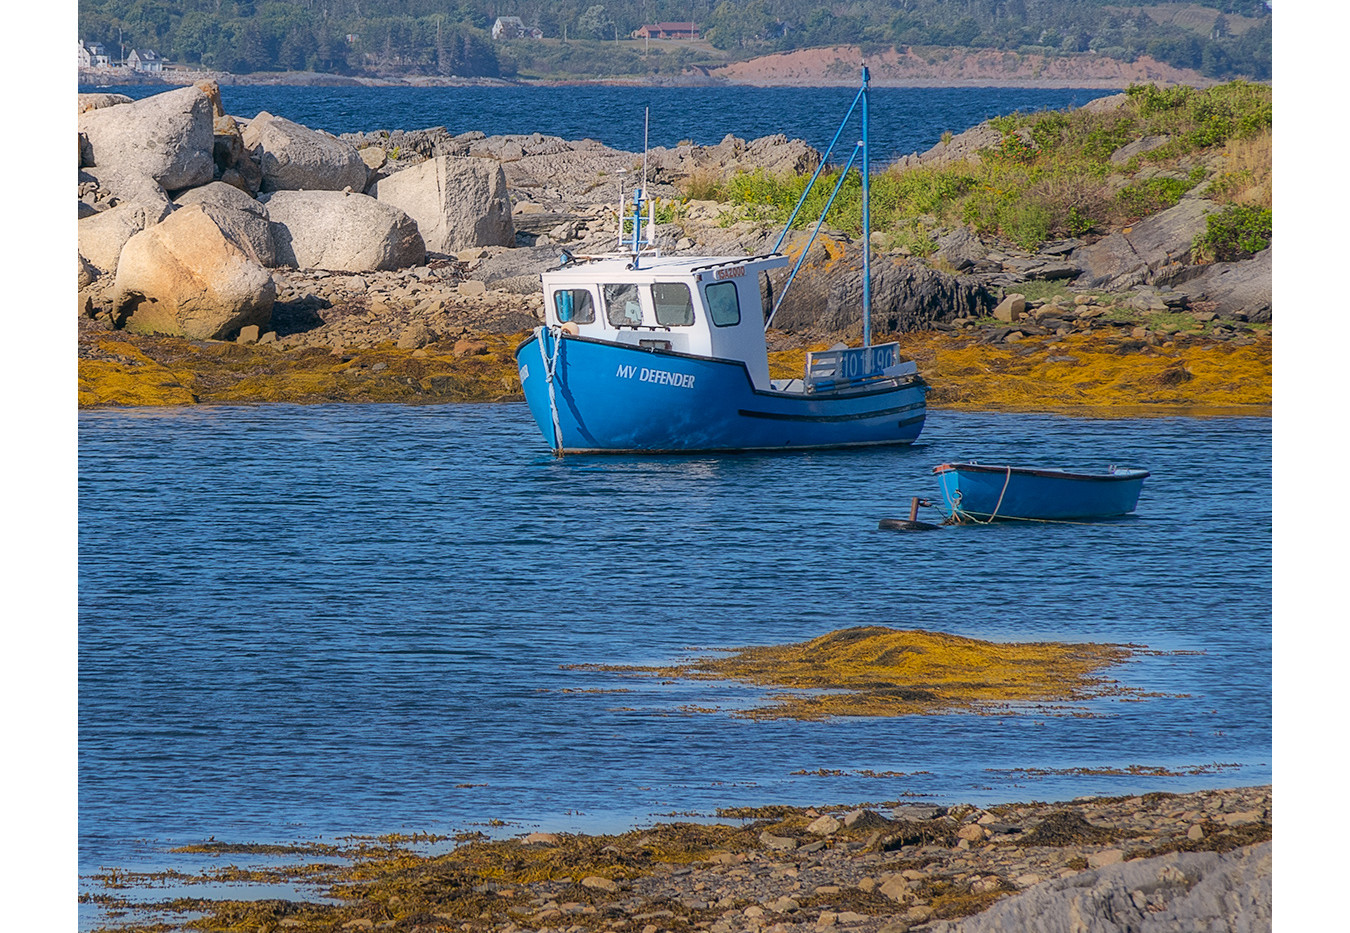 Blue Rocks, Blue Boats